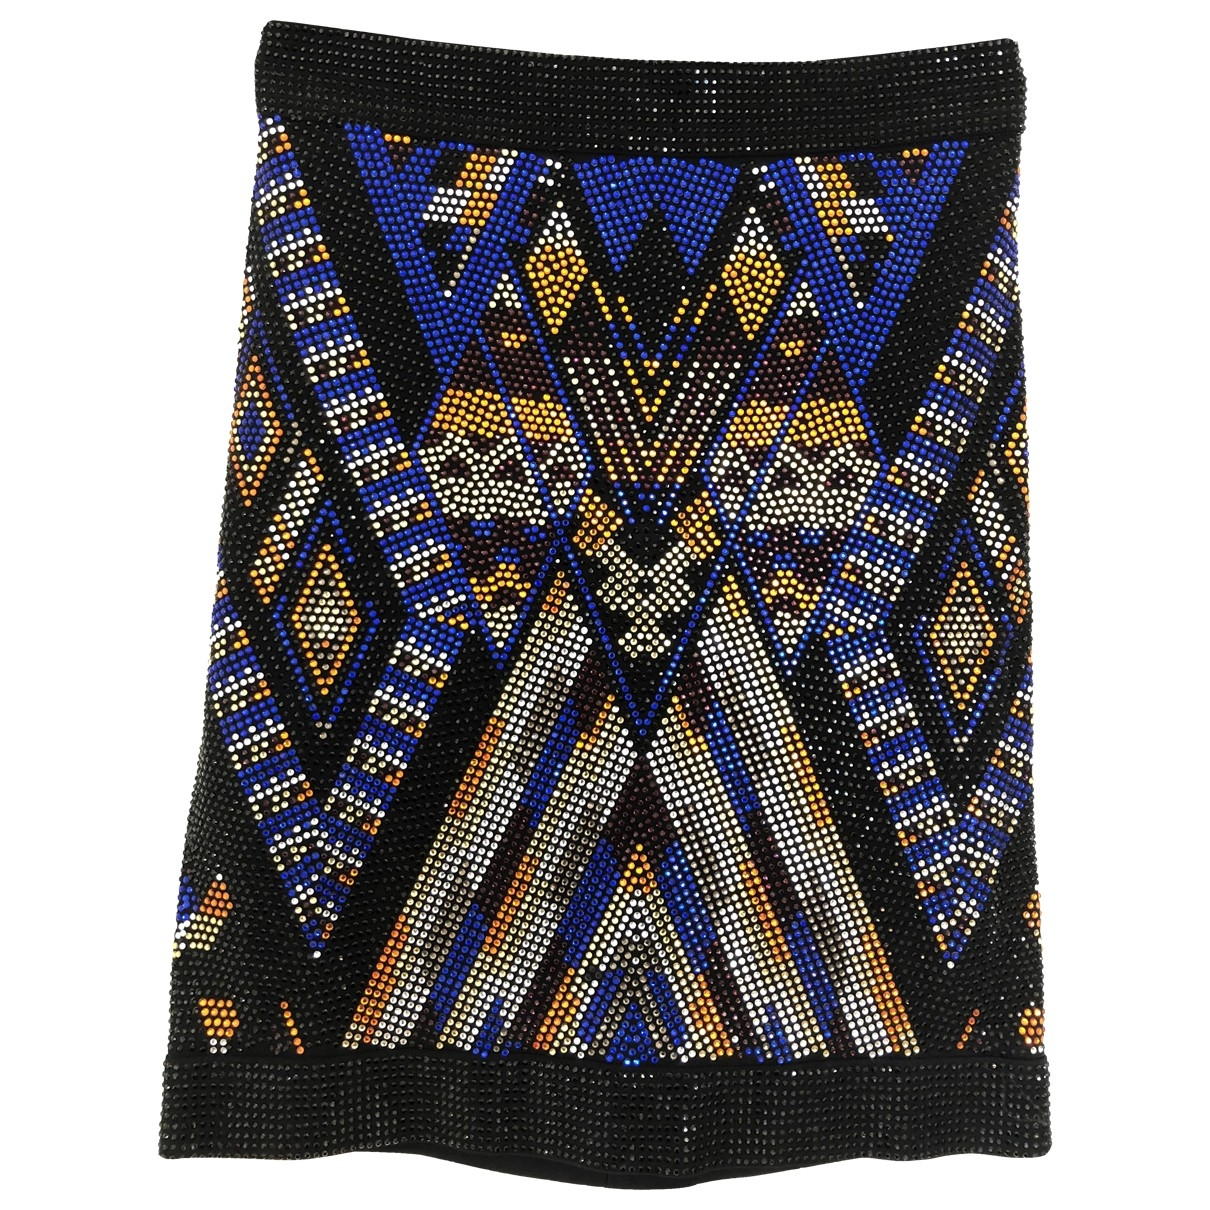 Balmain \N Multicolour Glitter skirt for Women 36 FR